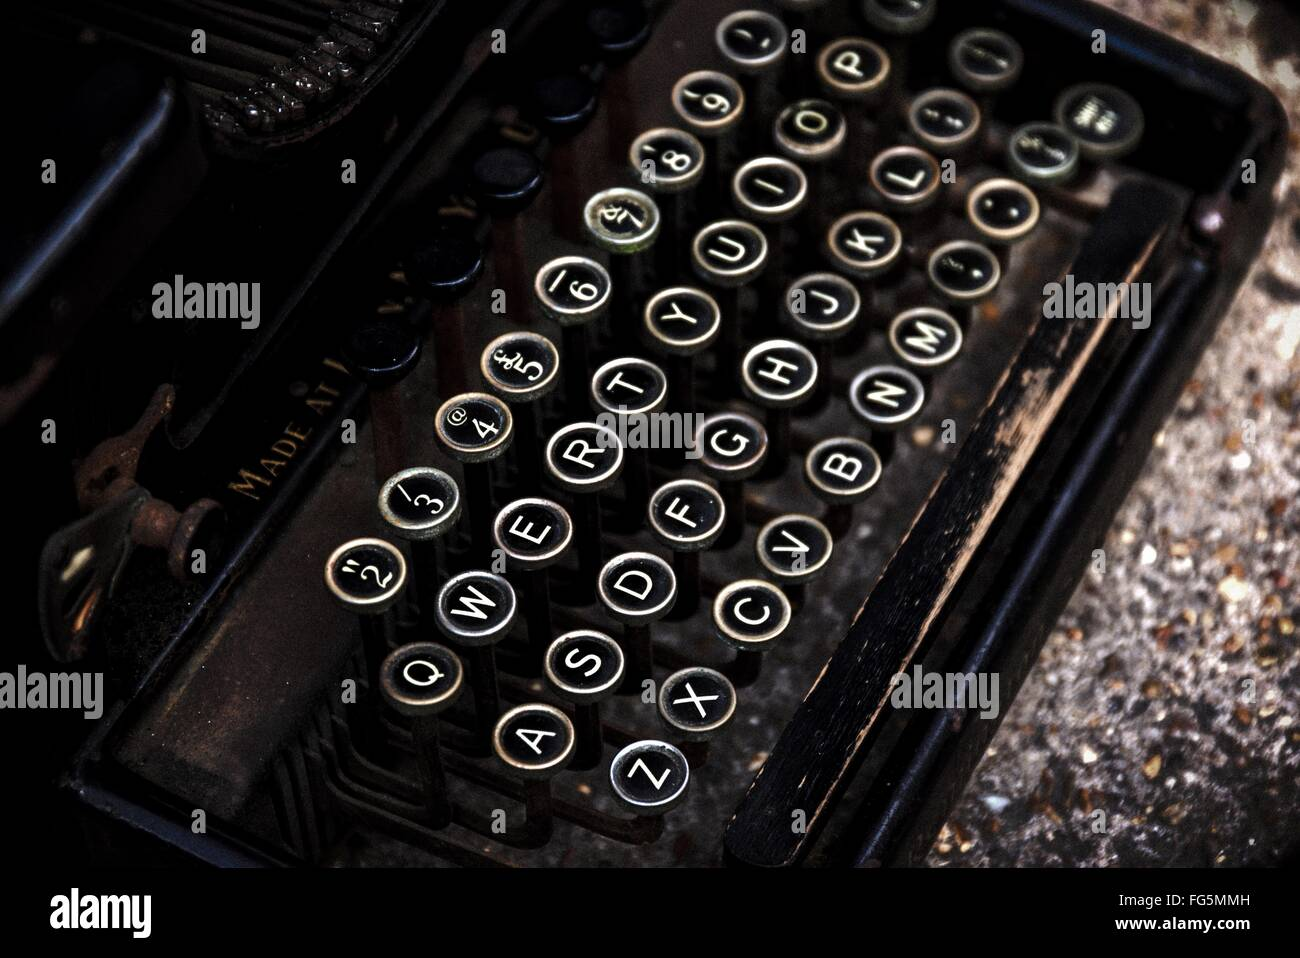 High Angle View of Old Typewriter Photo Stock